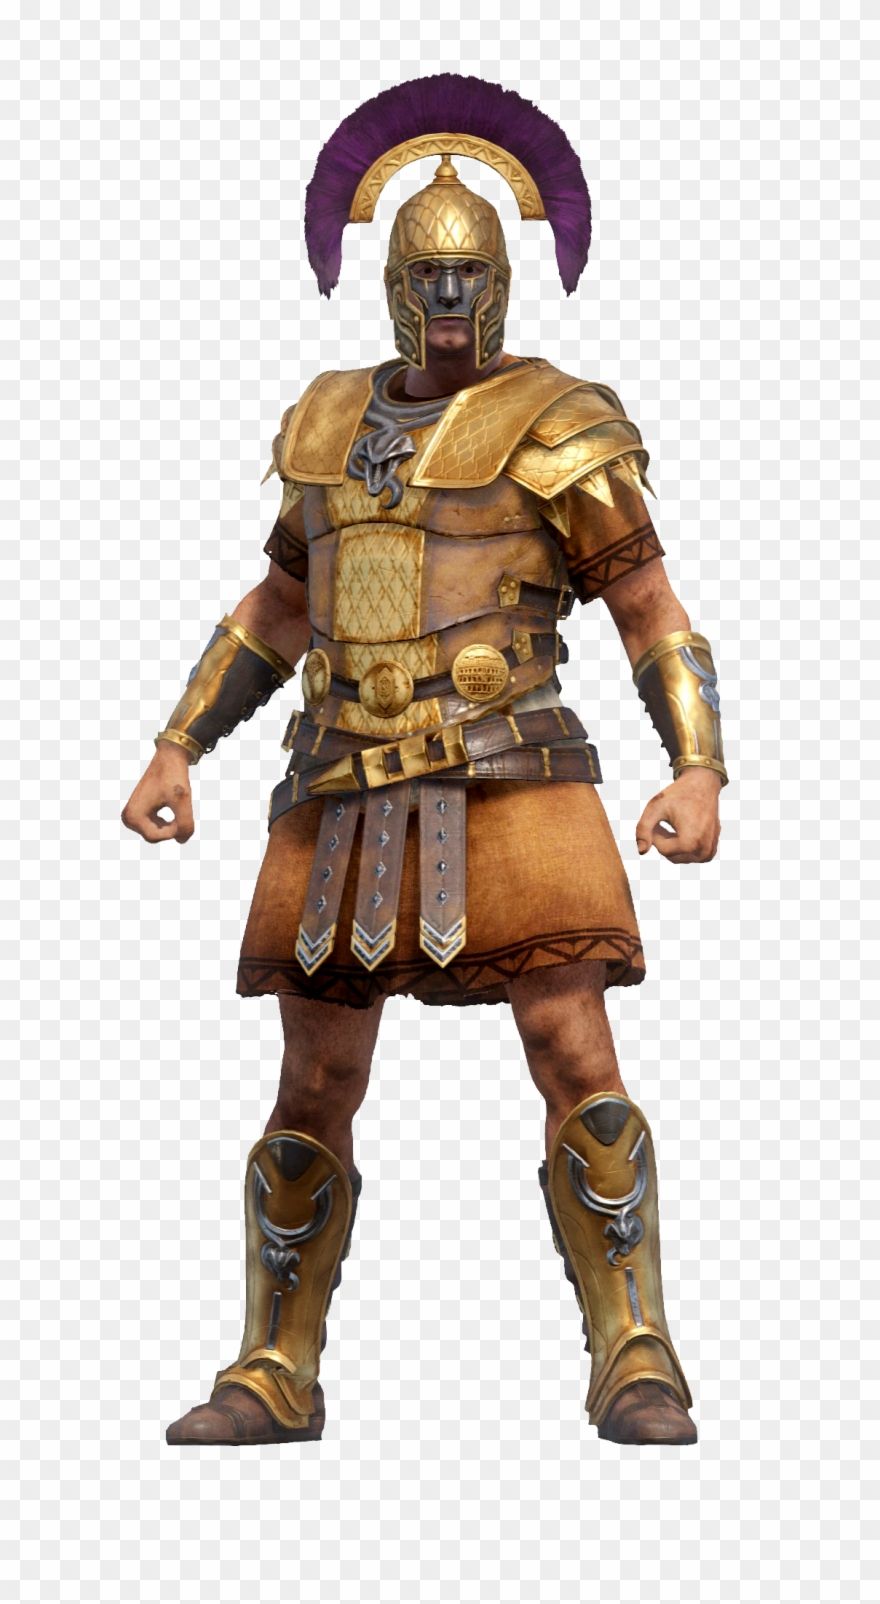 Gladiator Transparent Background.